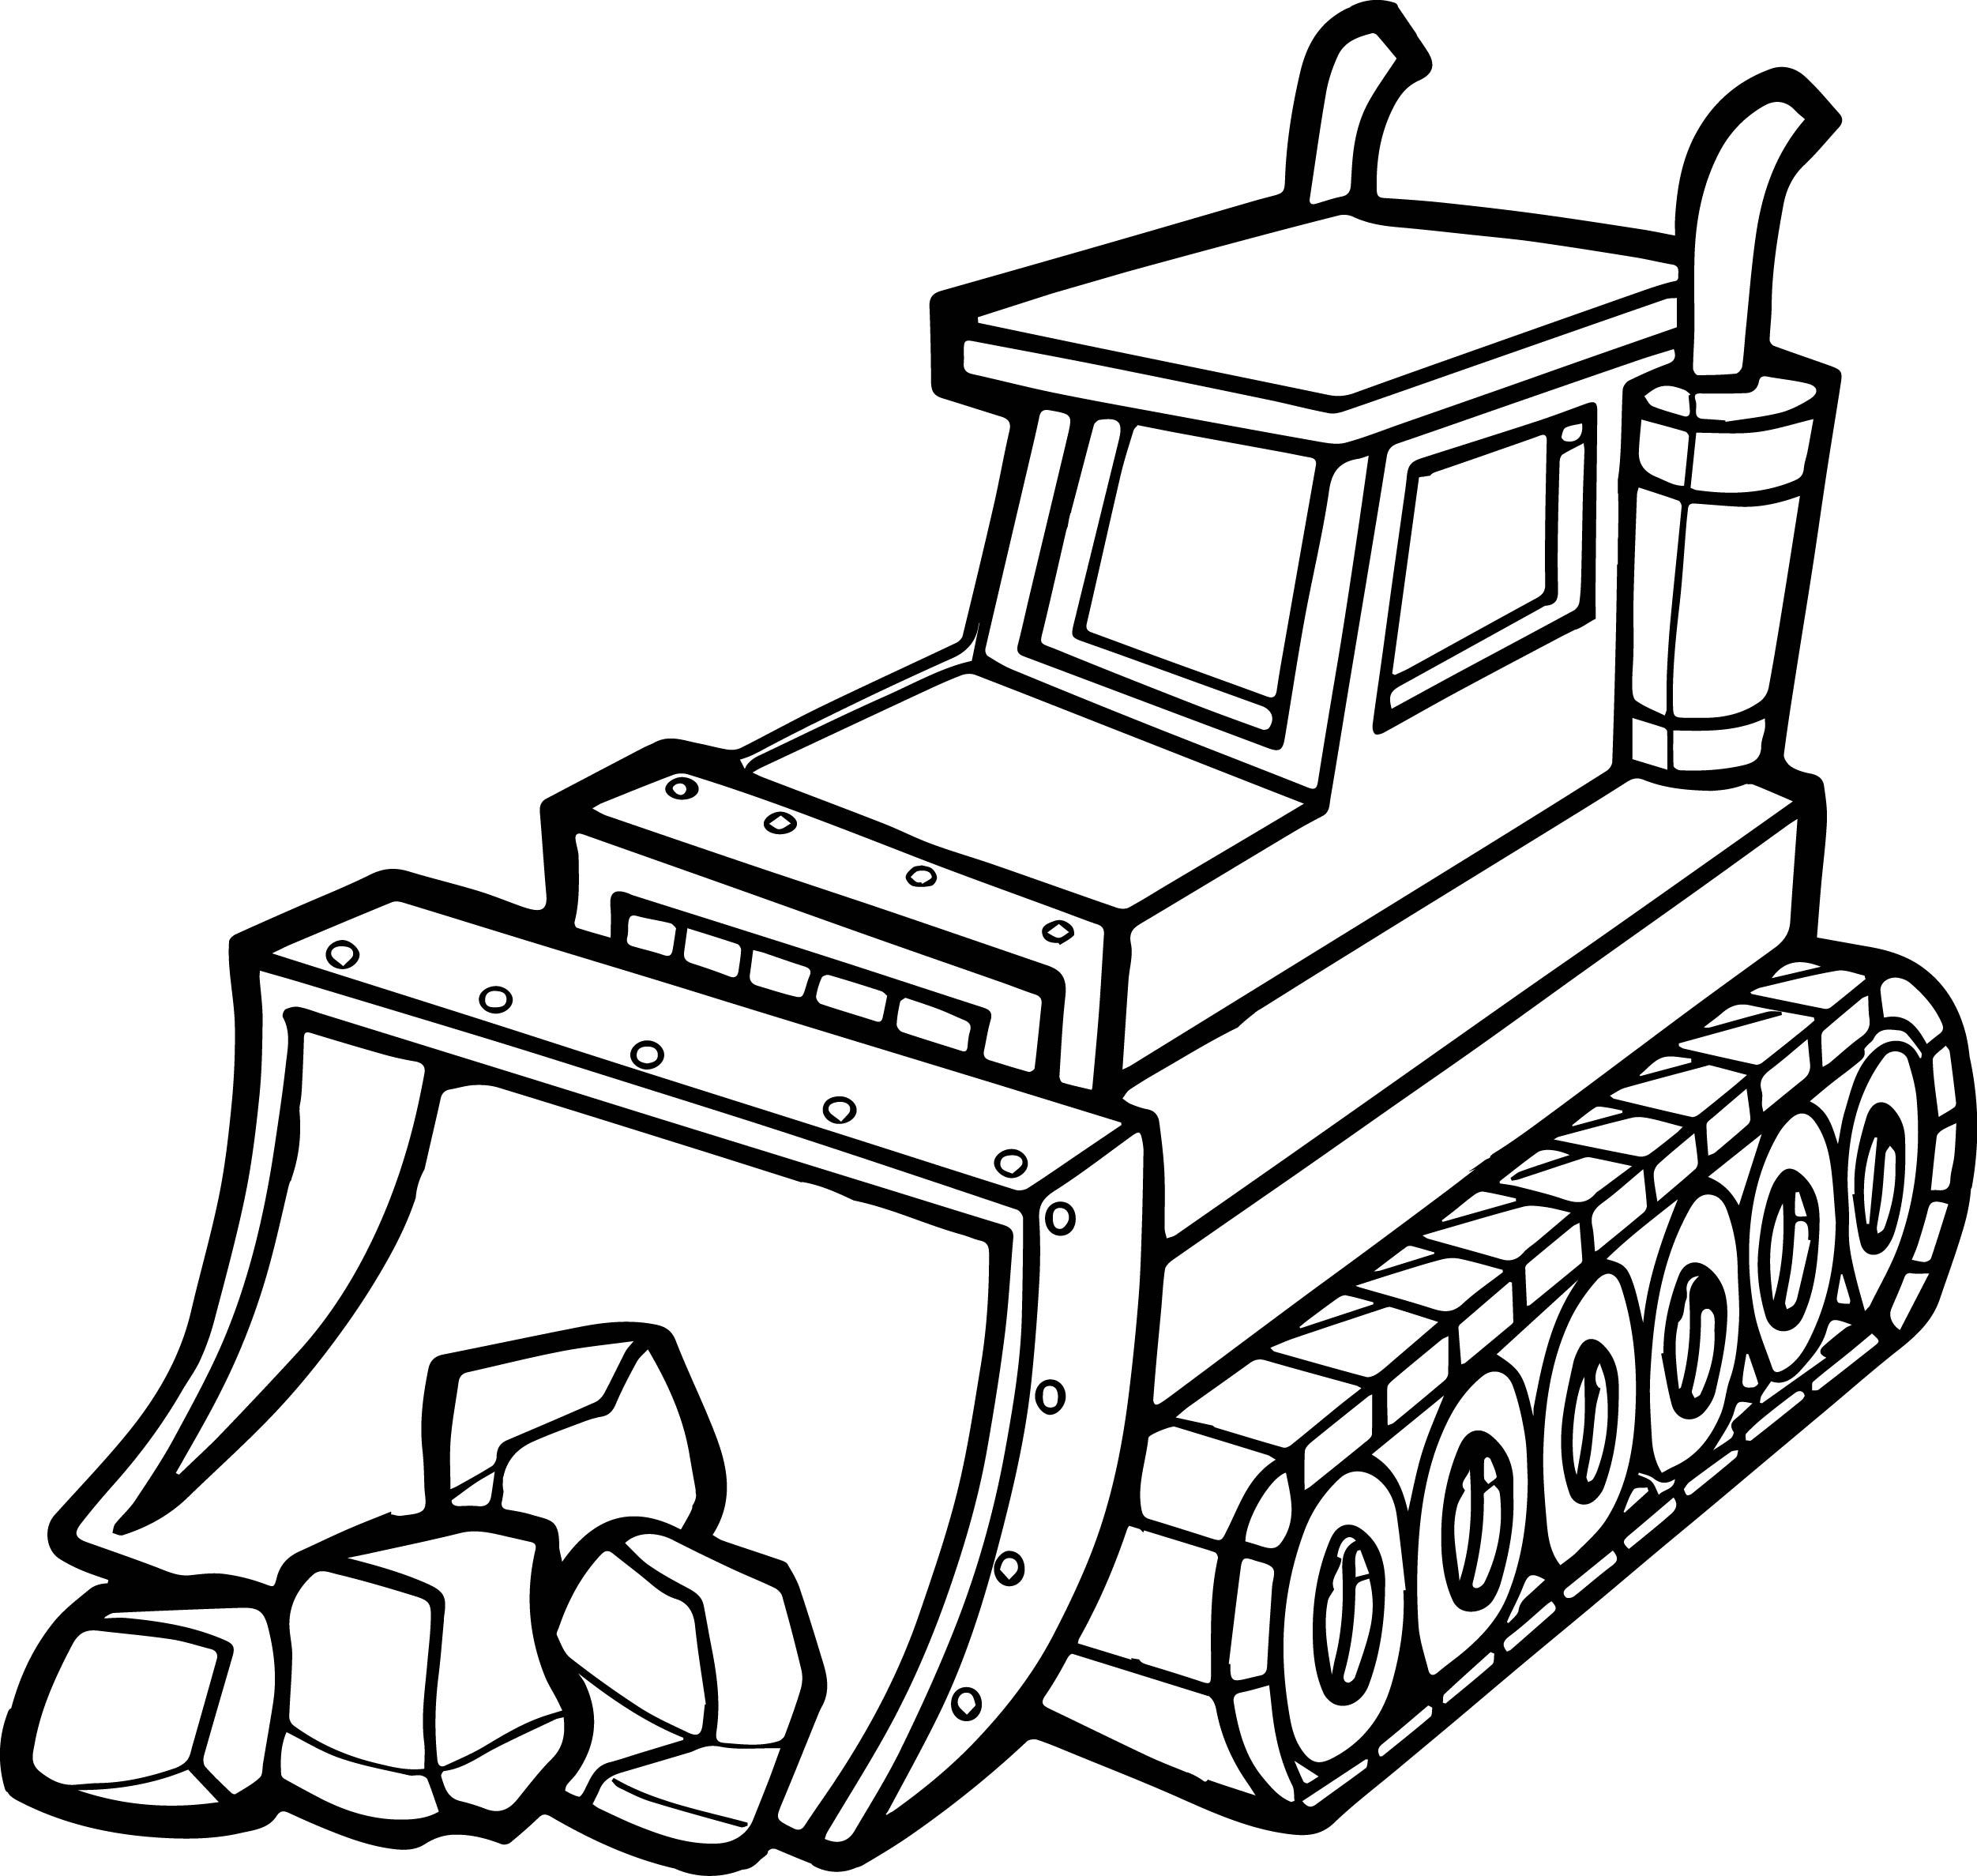 2503x2375 Appealing Best Stone Shovel Bulldozer Coloring Page Wecoloringpage